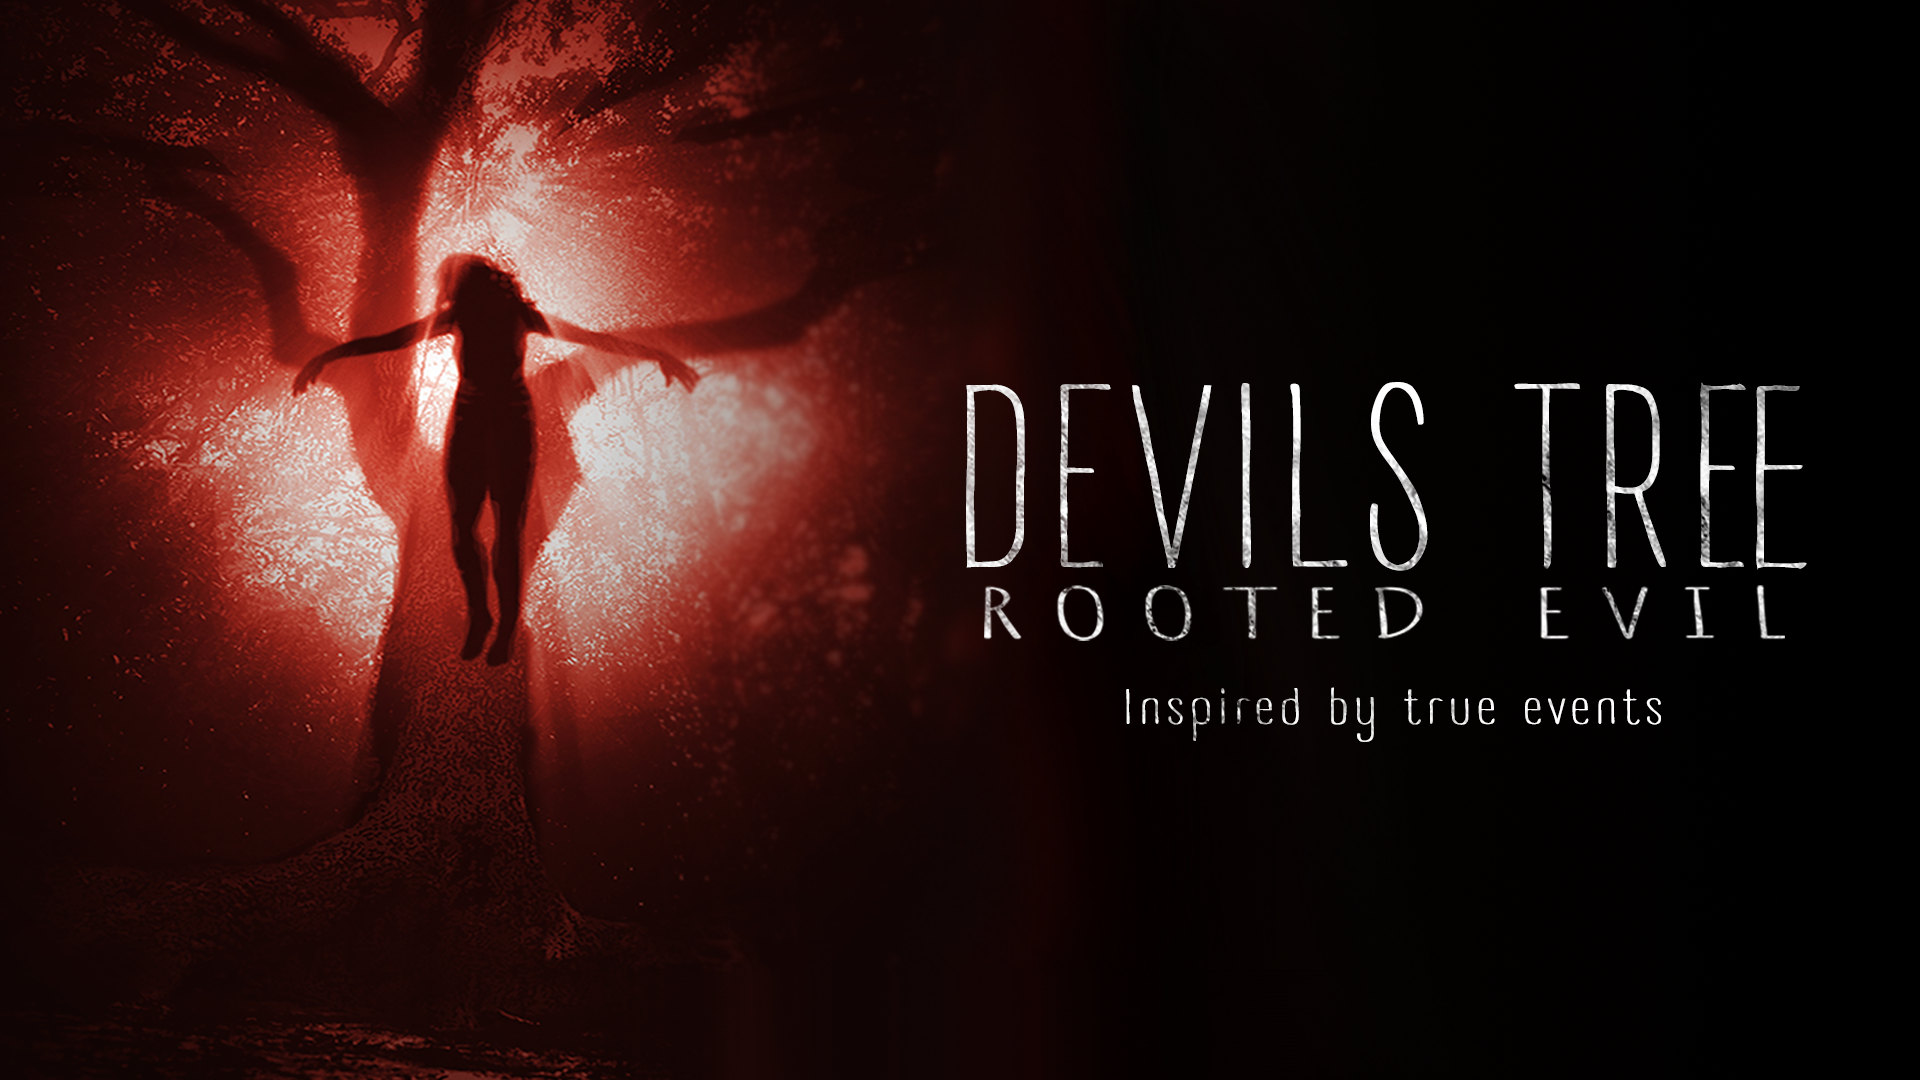 Devils Tree: Rooted Evil